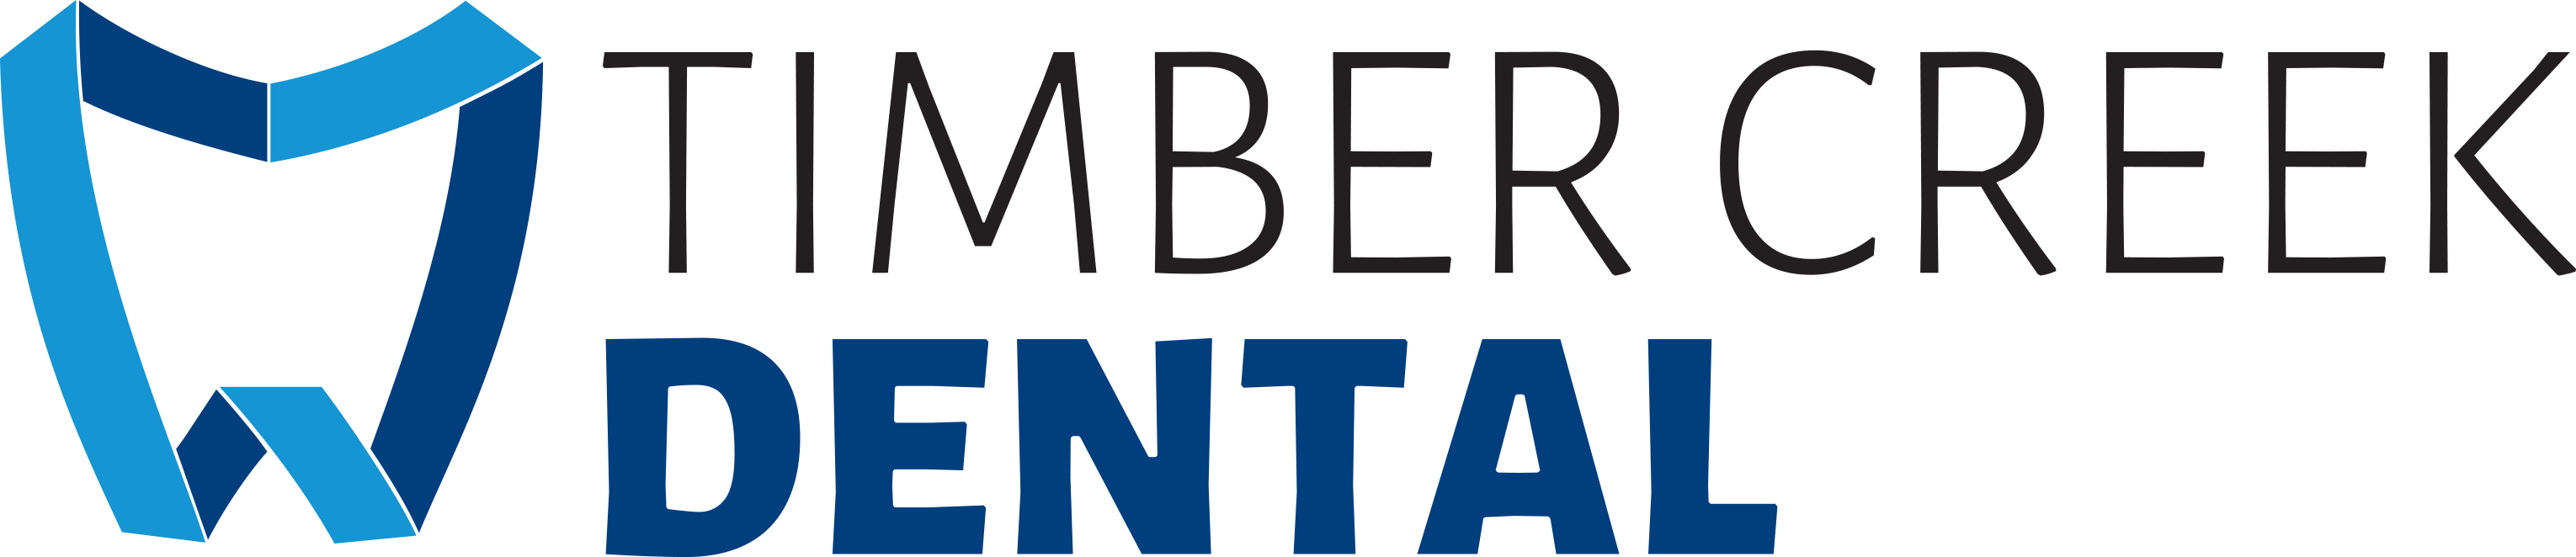 Timber Creek Dental